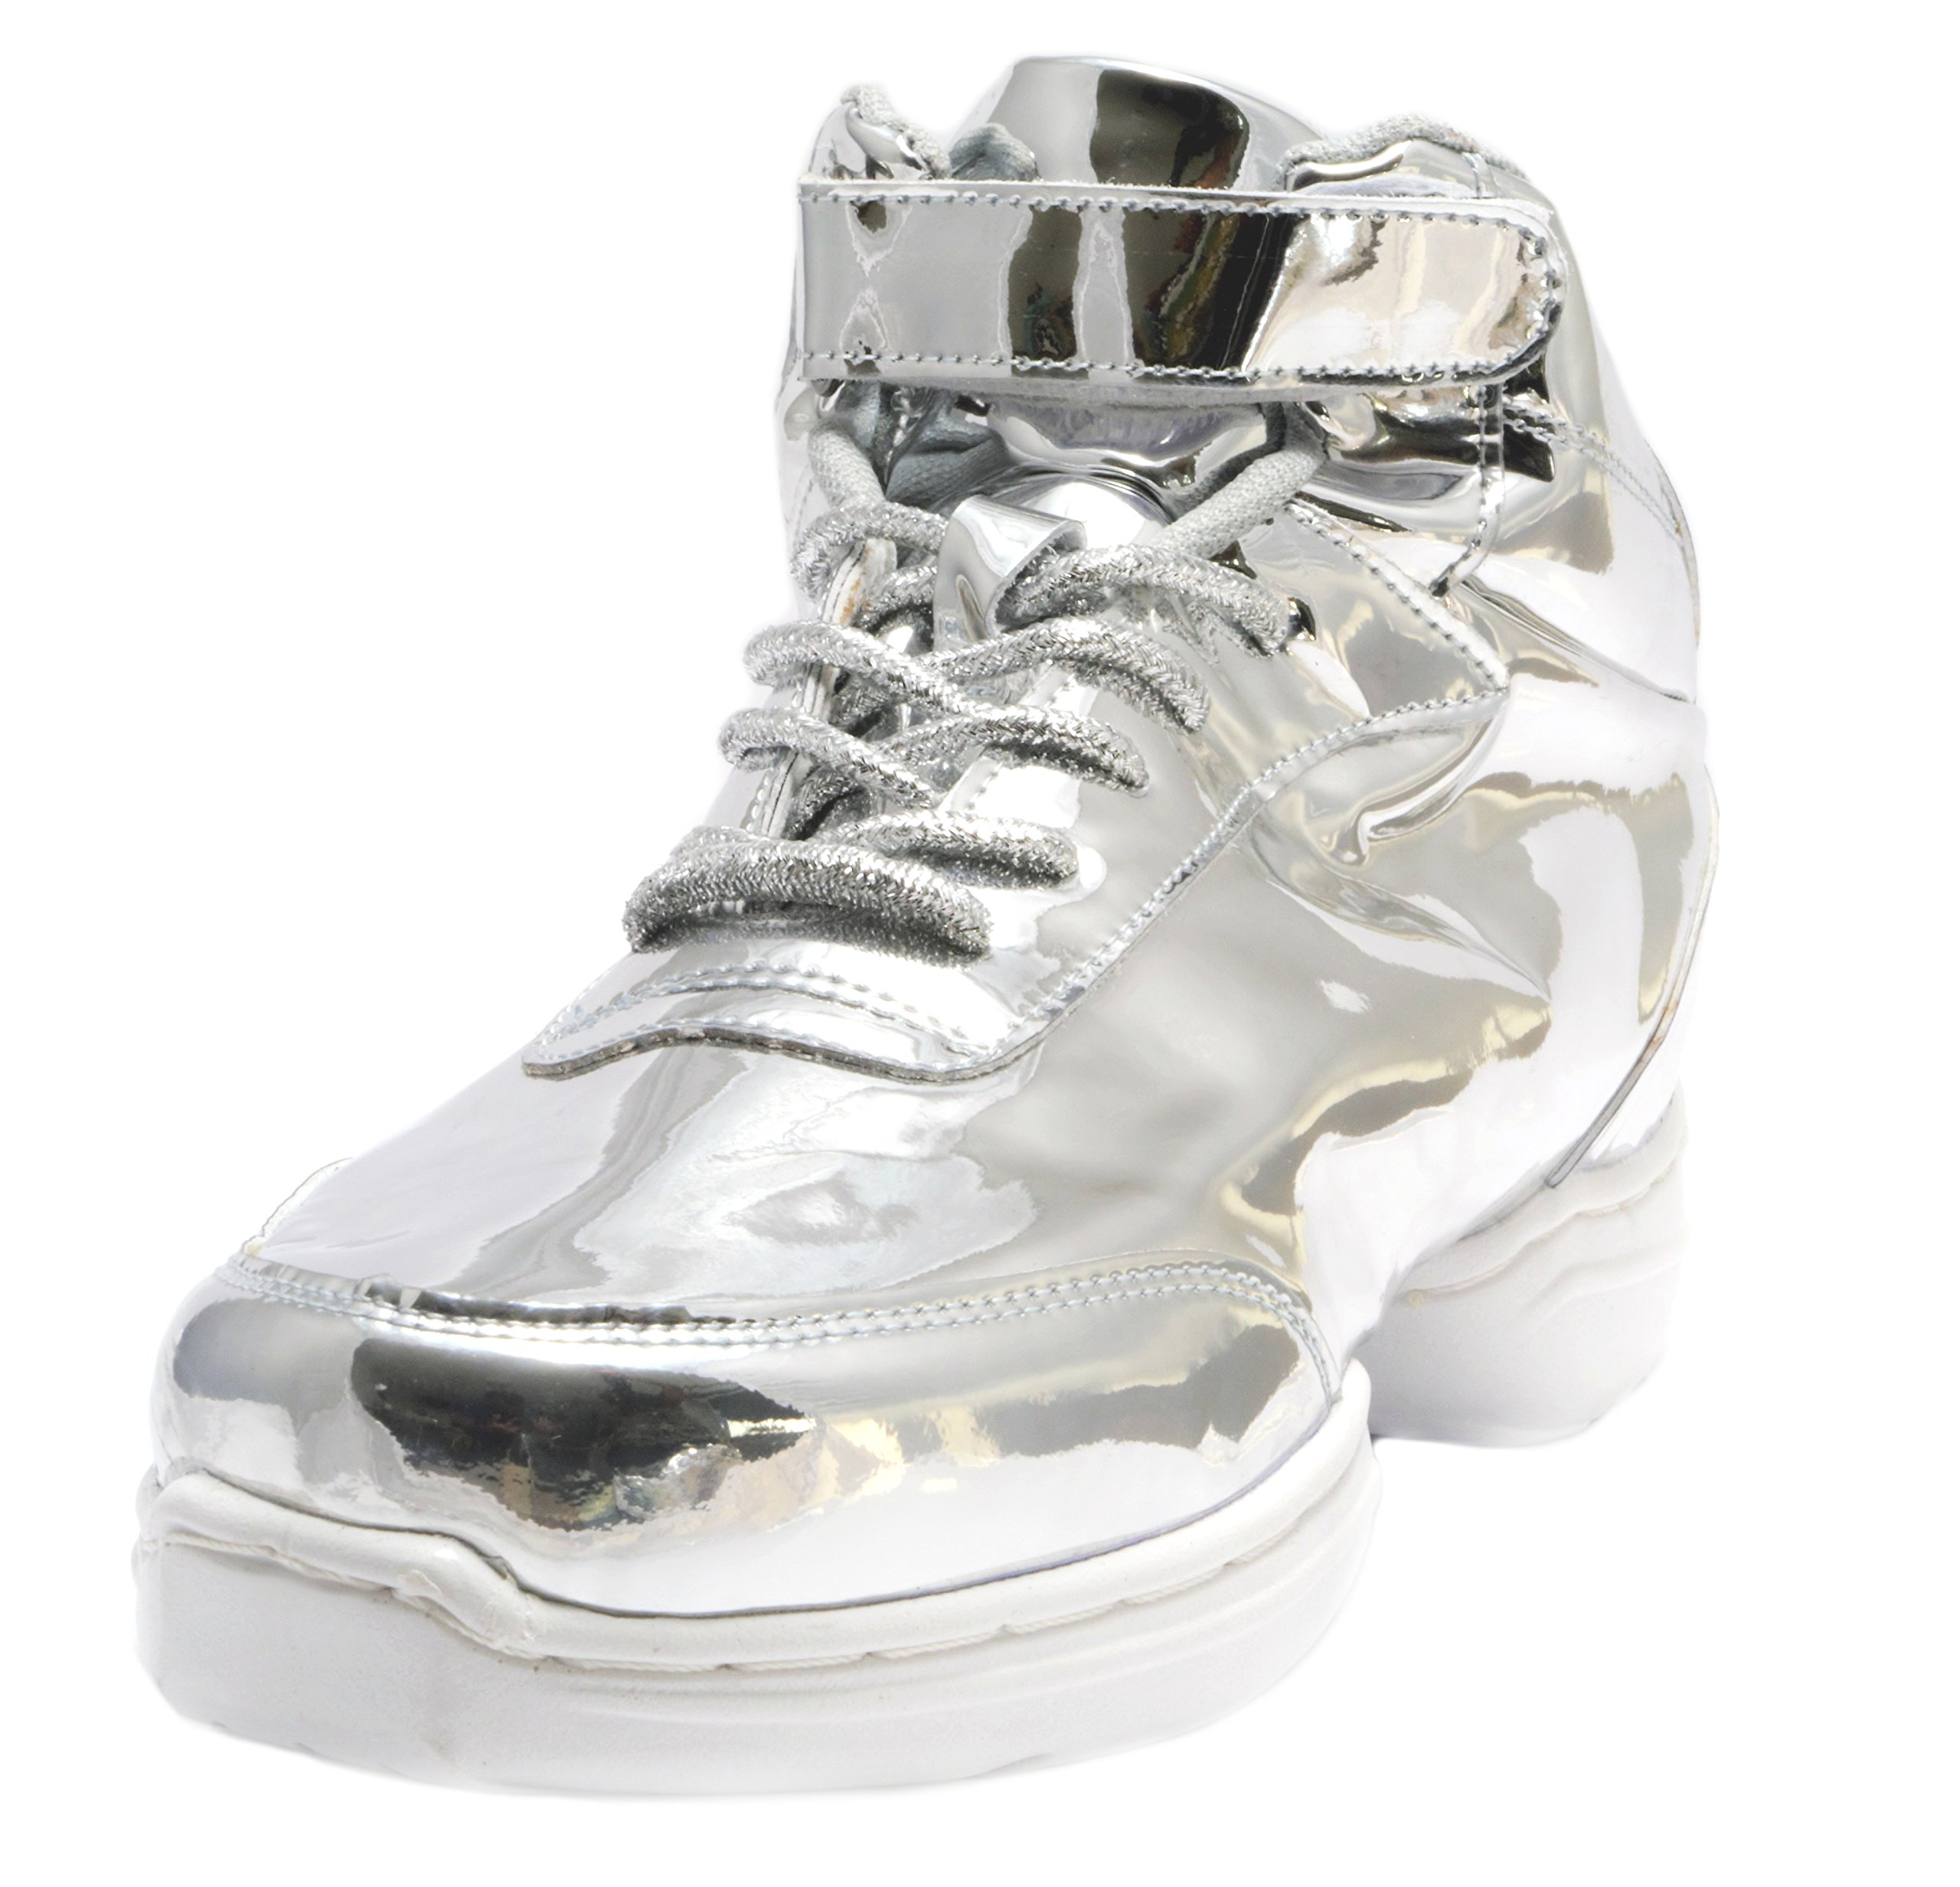 Nene's Collection Silver Women's Dance Fitness Shoes High Top Sneakers (9.5)